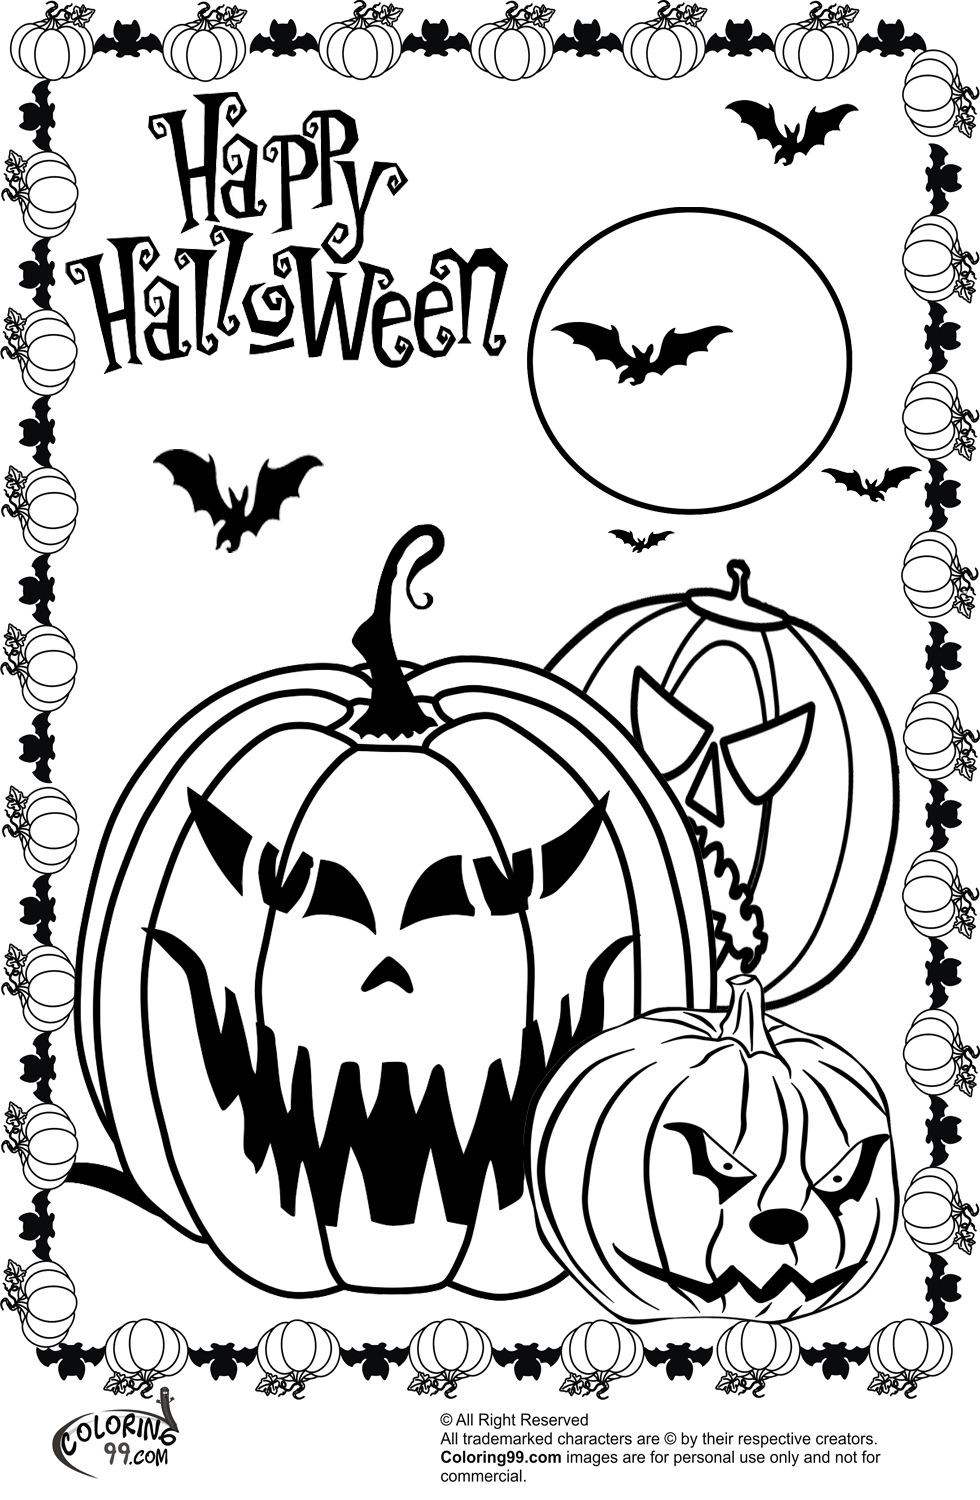 haloween coloring pages top 10 halloween coloring pages for kids to consider this pages haloween coloring 1 1